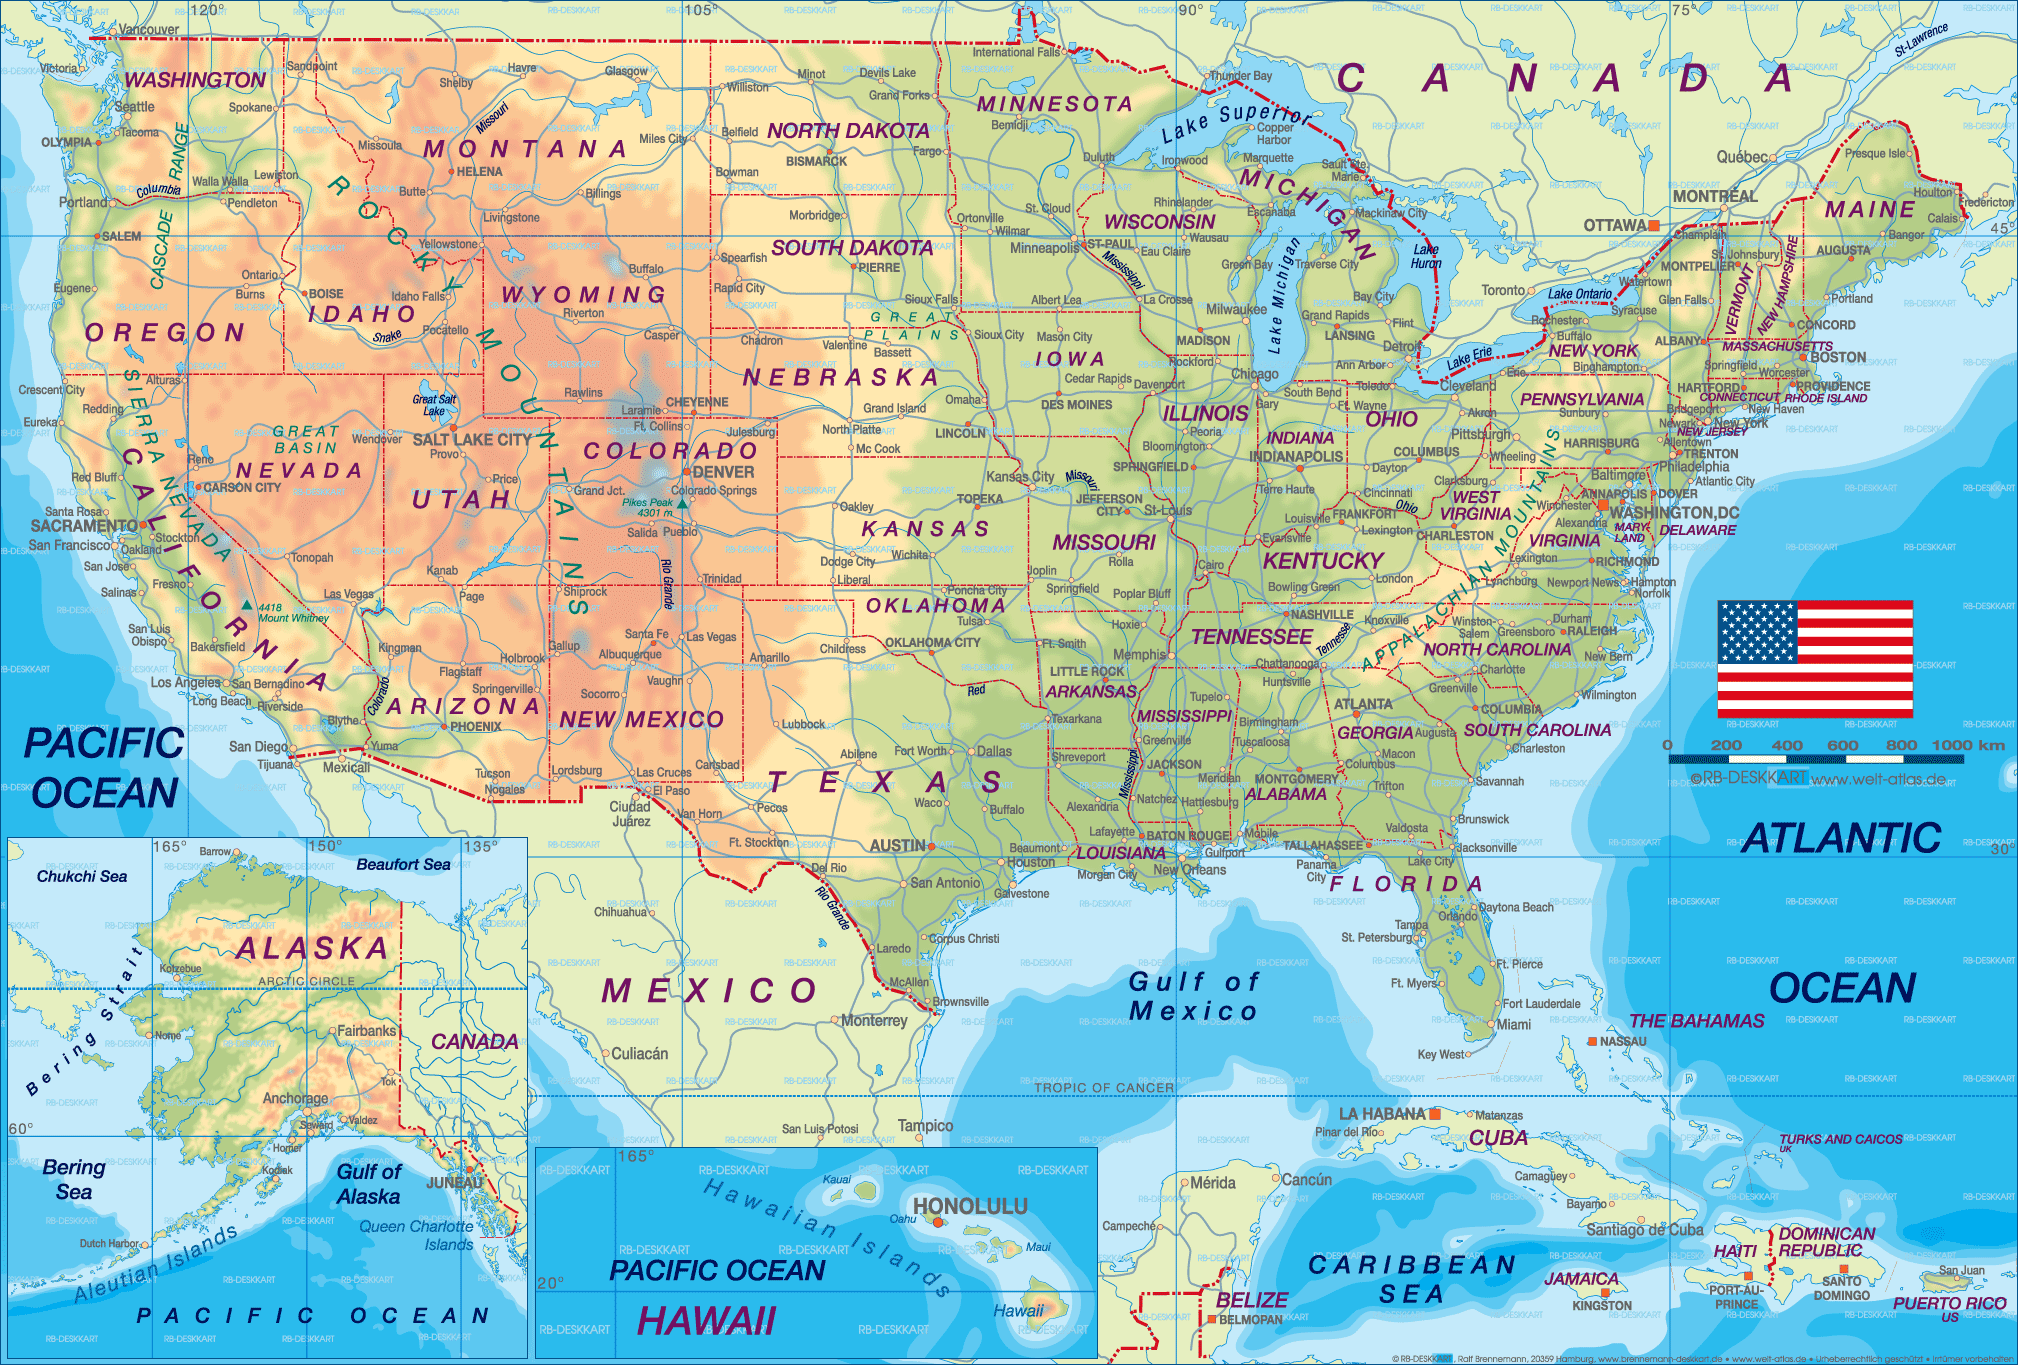 United States Map Of Cities.United States Cities Map Mapsof Net